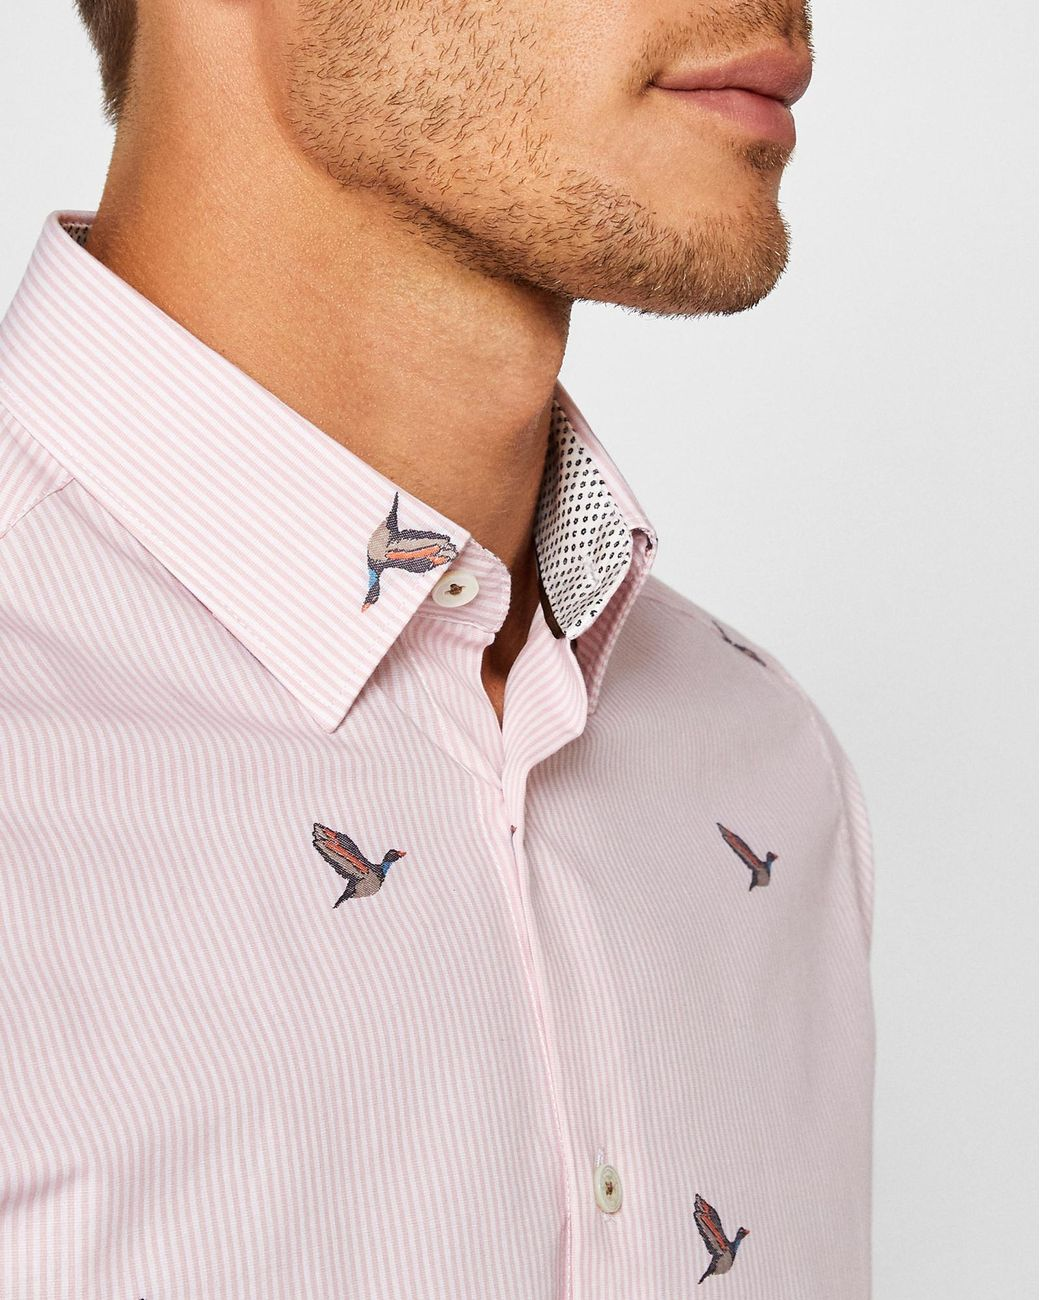 734287265d39 Ted Baker Striped Duck Print Cotton Shirt in Pink for Men - Lyst